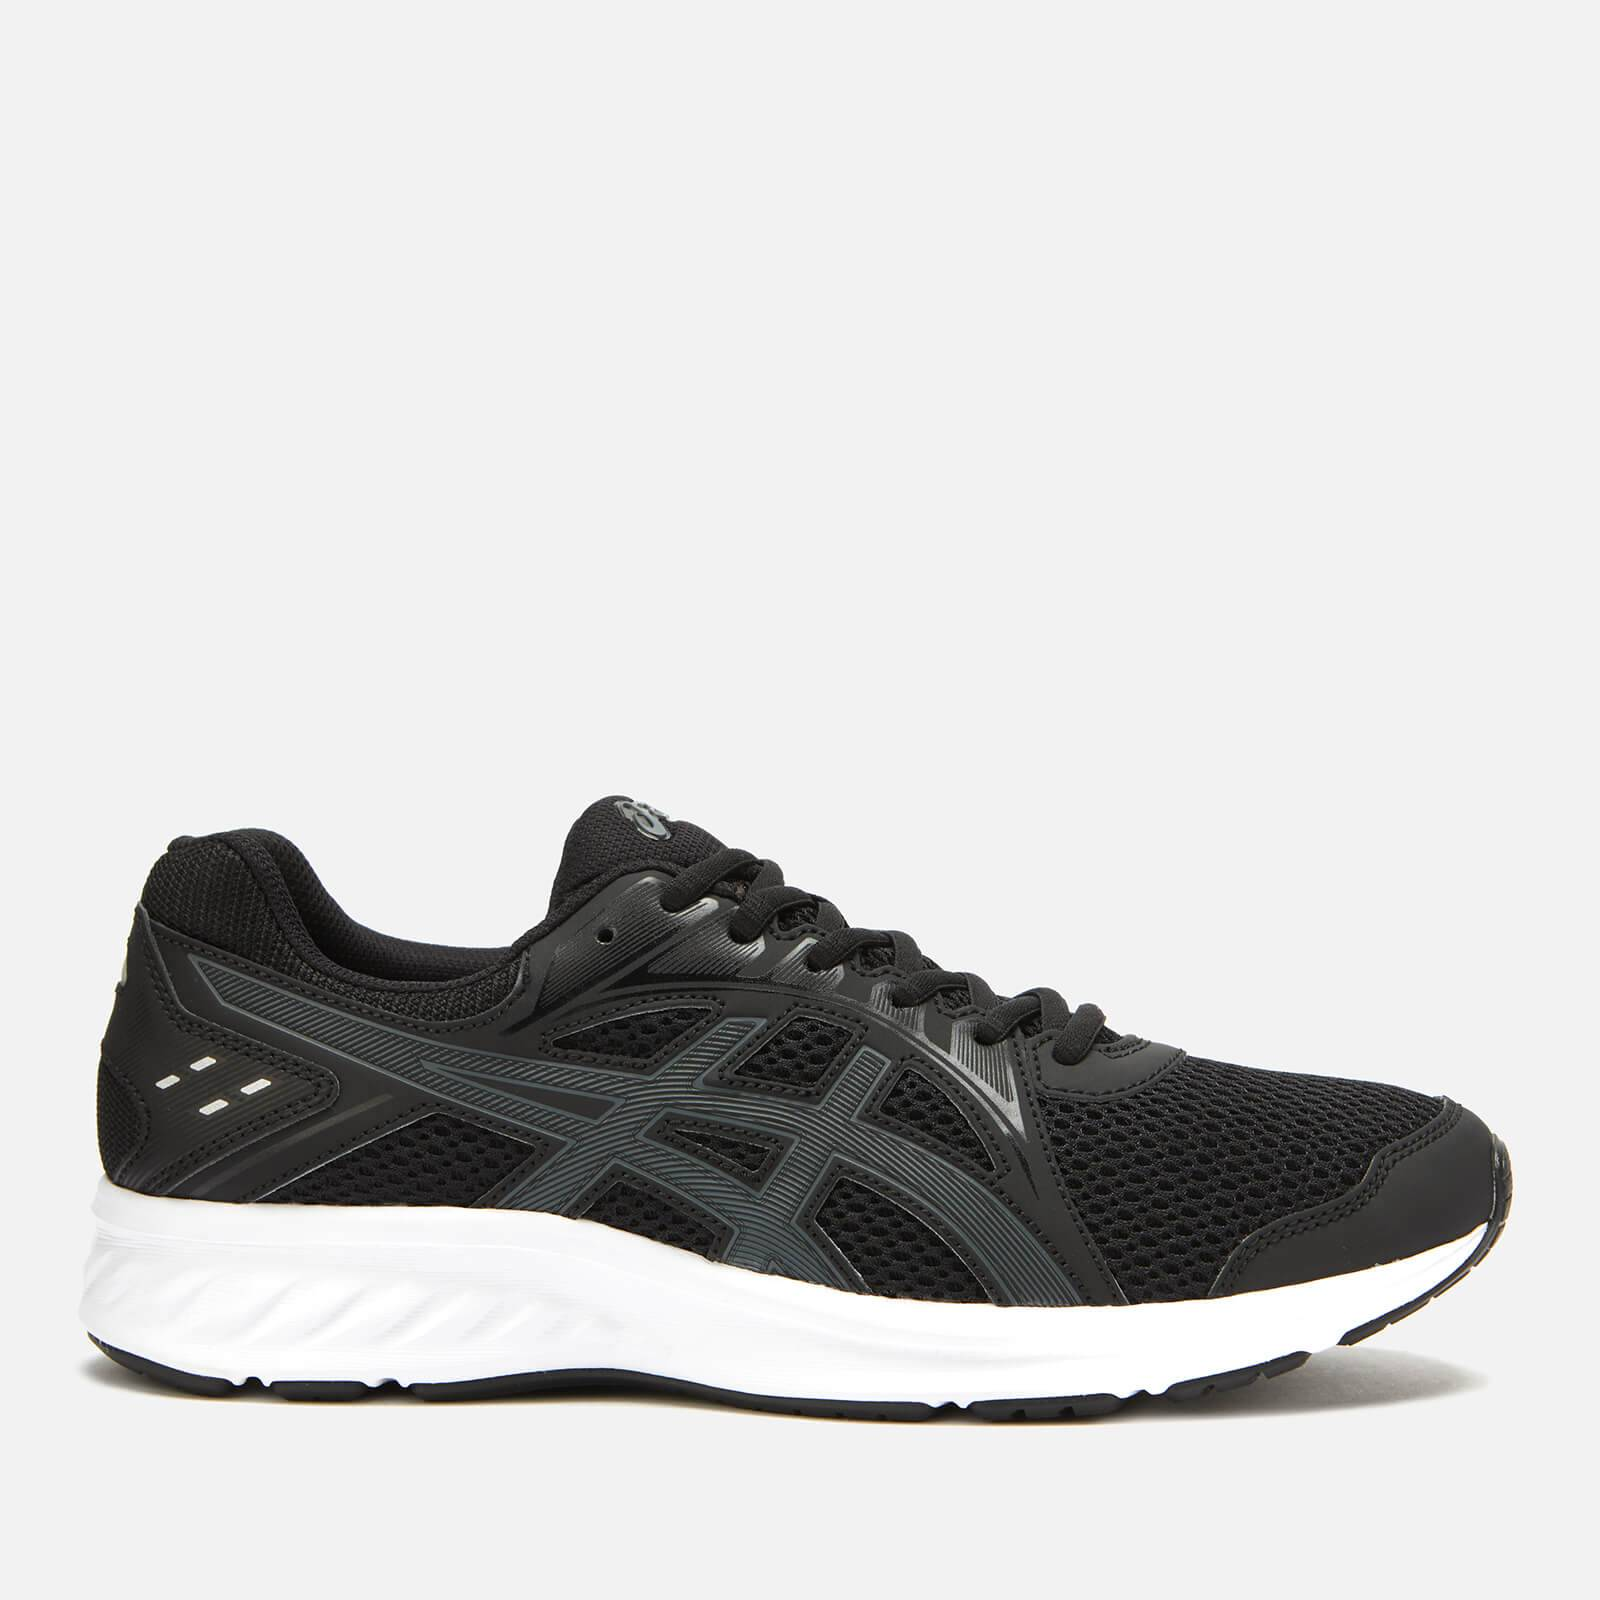 Asics Men's Running Jolt 2 Trainers - Black/Steel Grey - UK 9 - Black